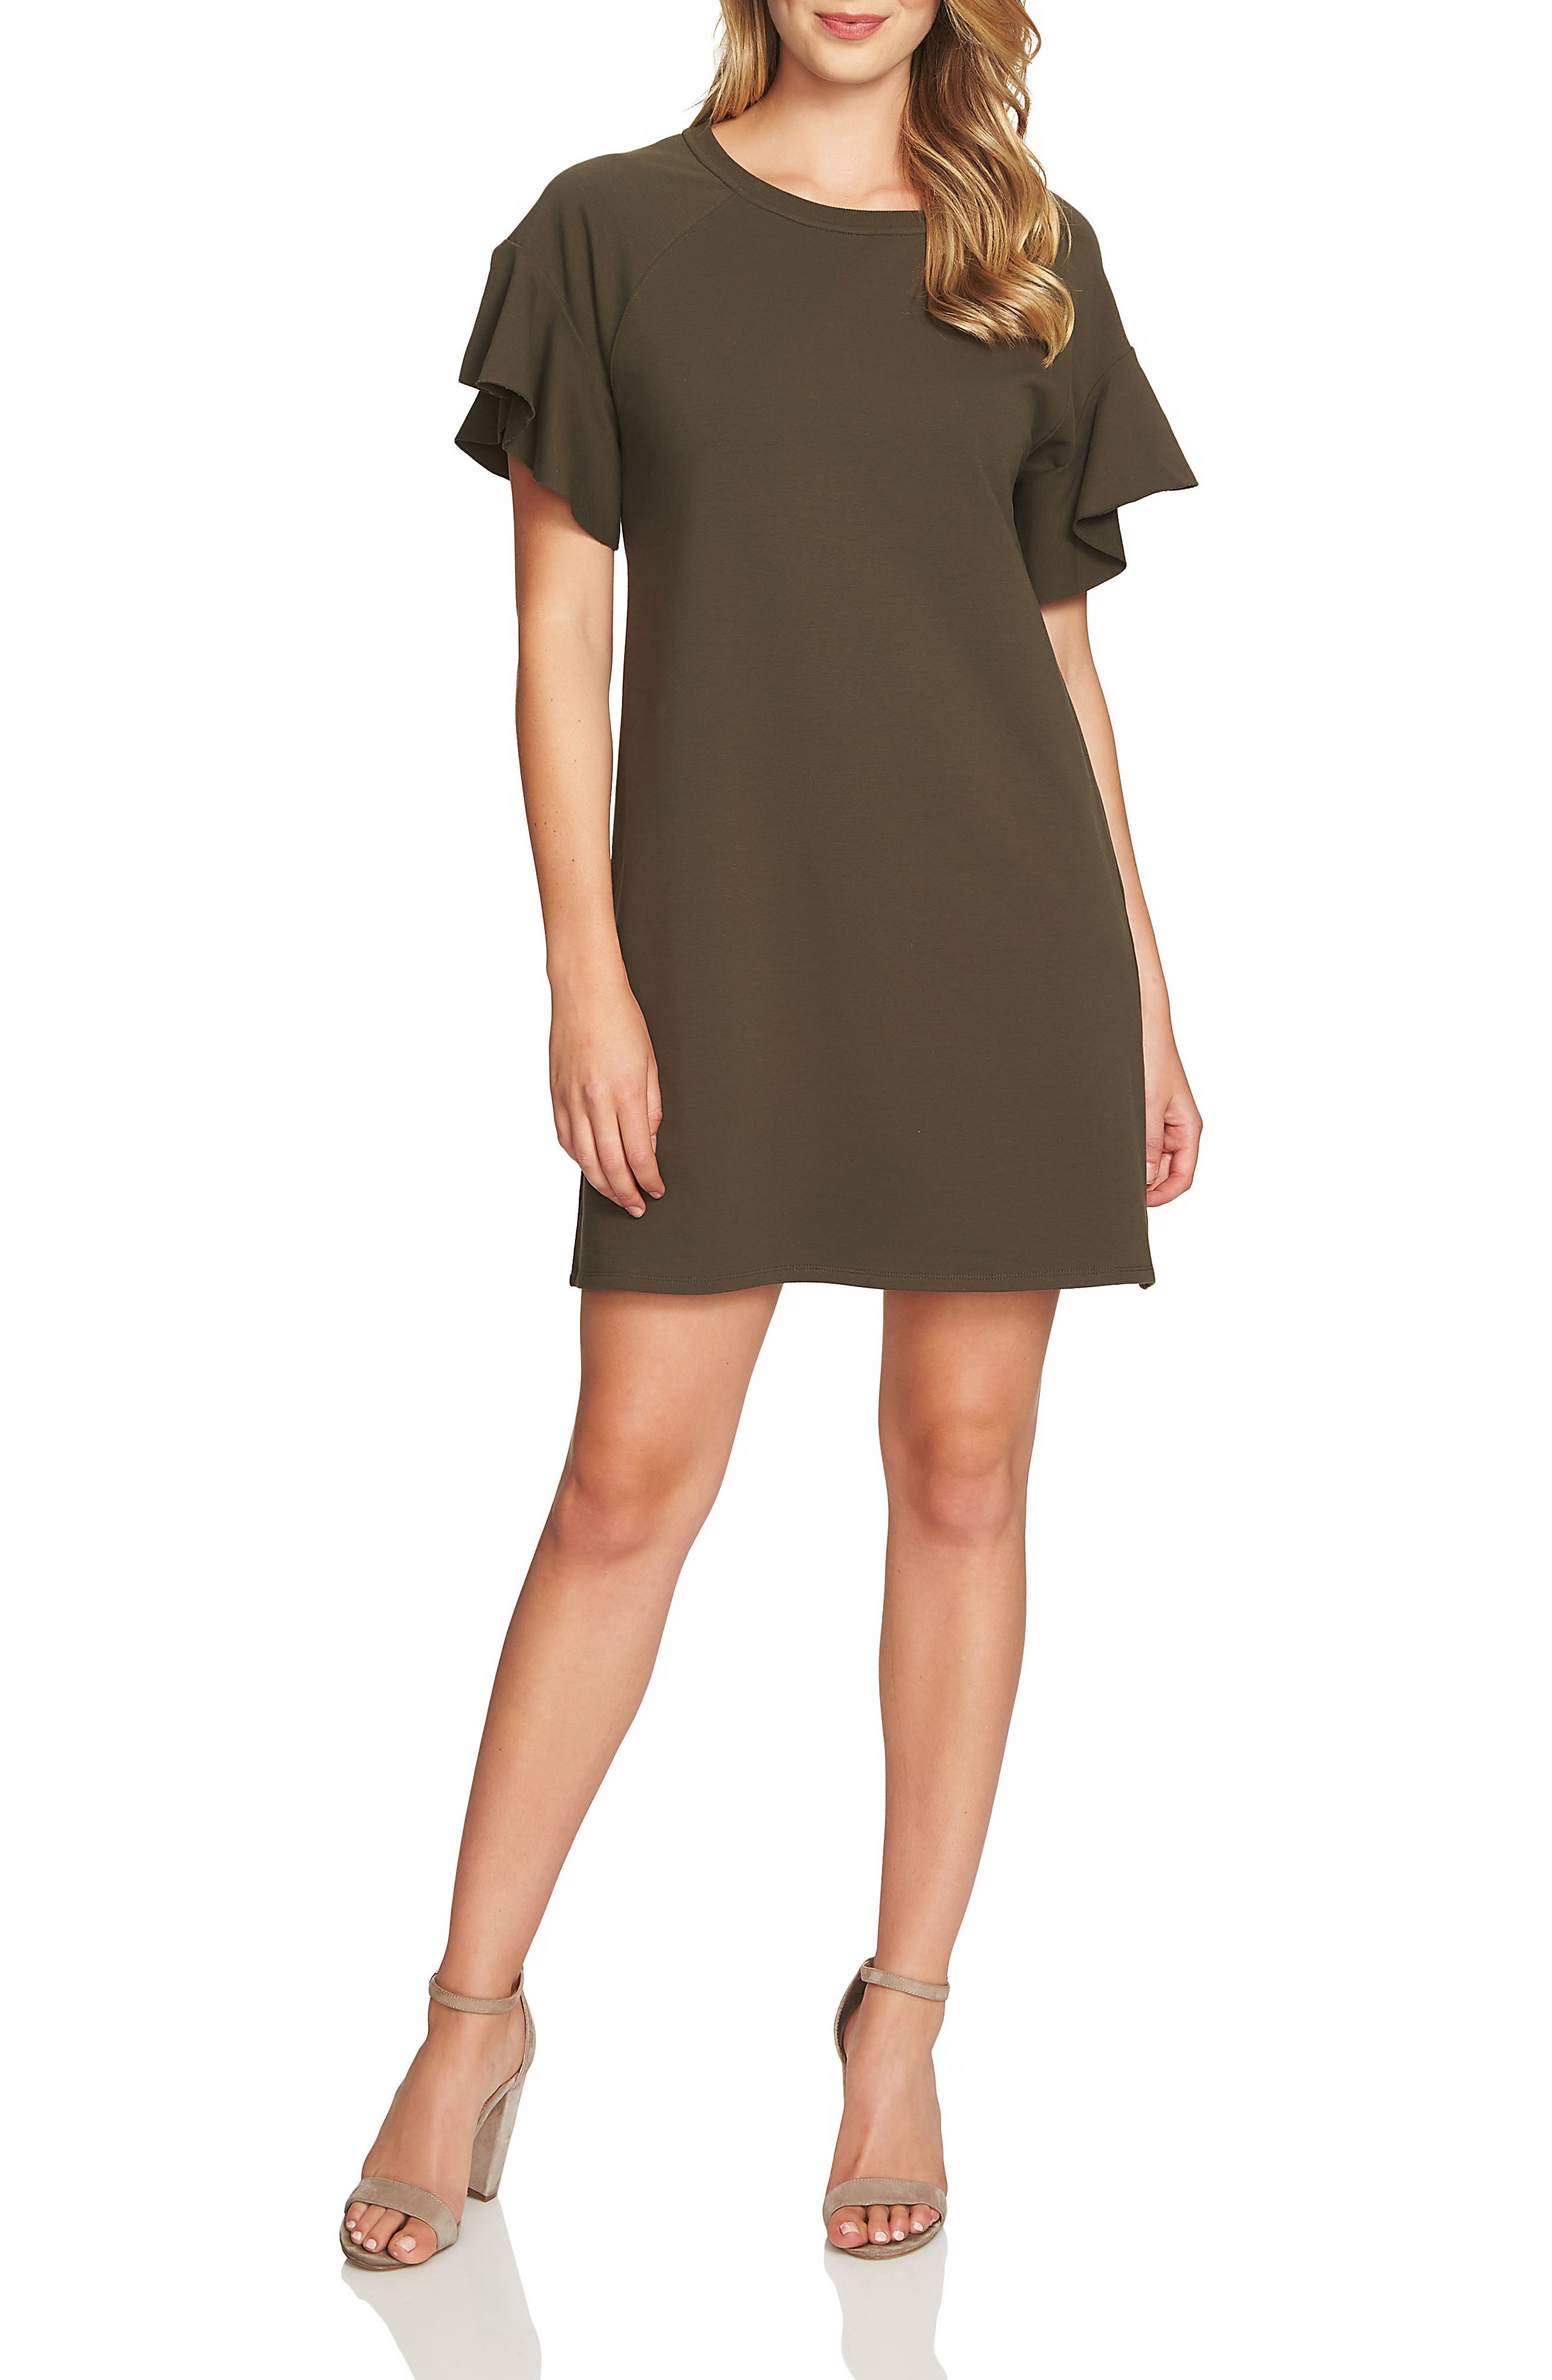 French Terry T-Shirt Dress,                         Main,                         color, Green Olive